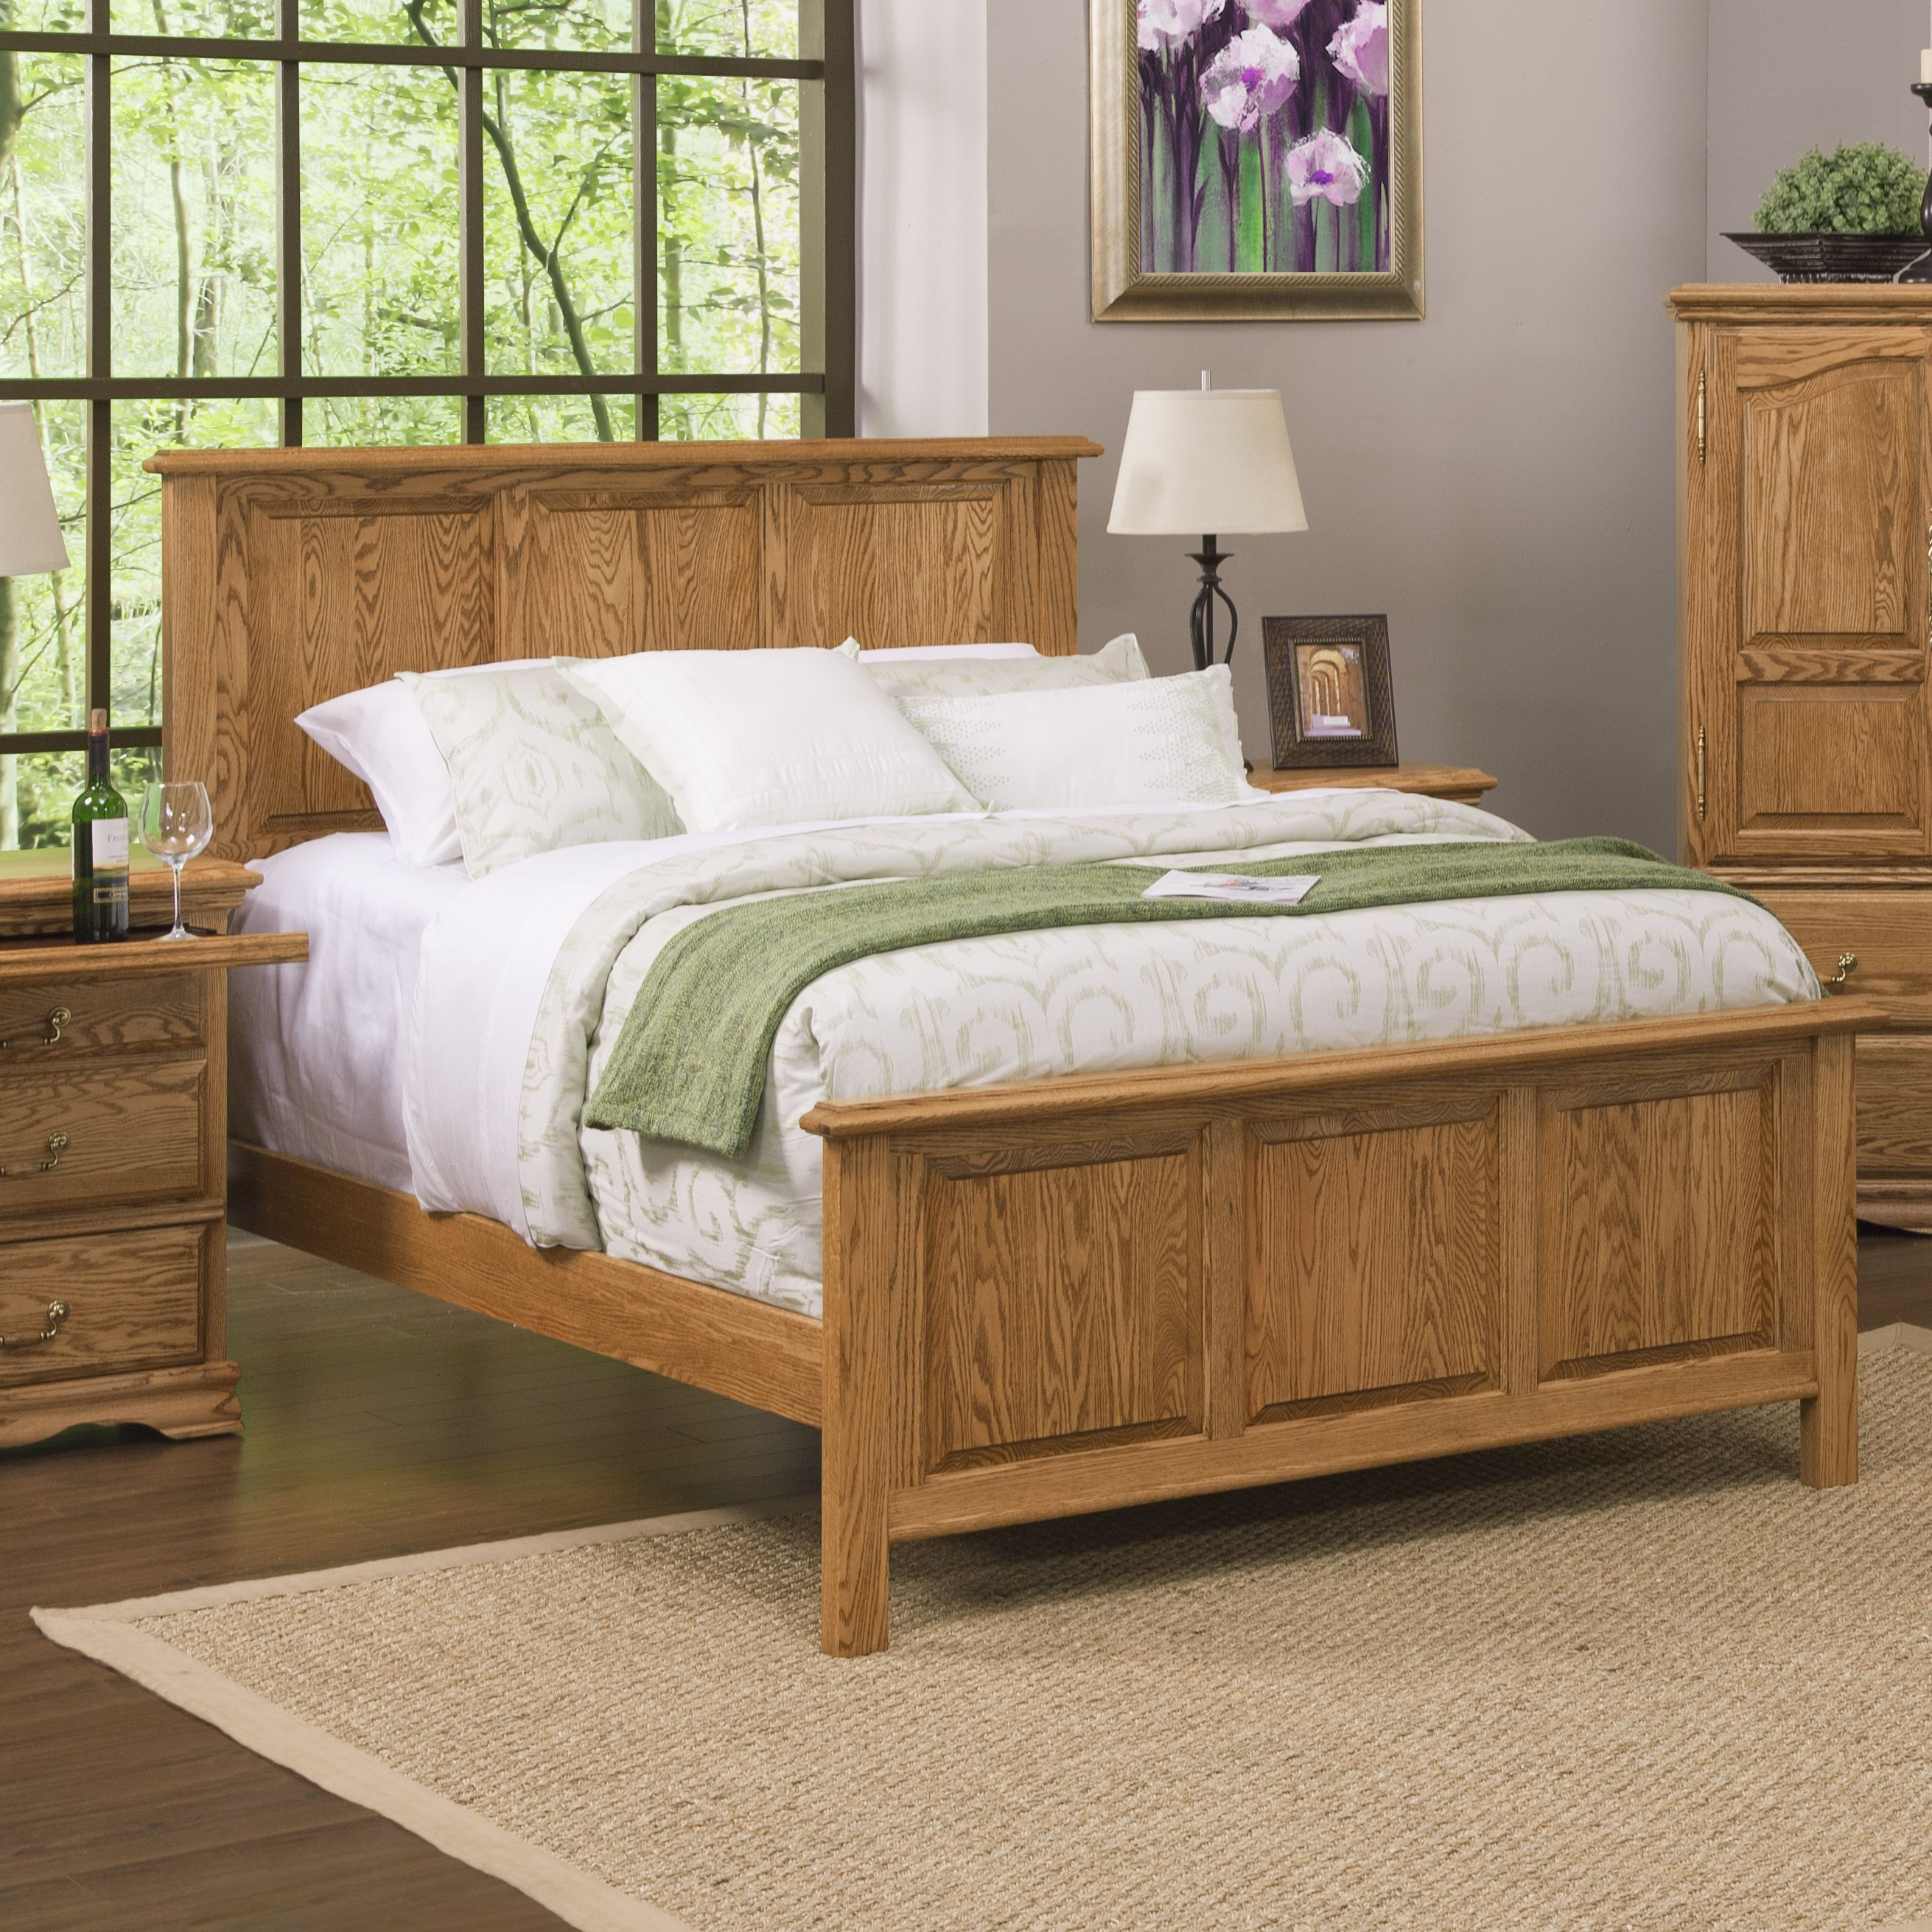 Panel Bed Solid Wood Panel Beds King Queen American Made Furniture Panel Bed Bed